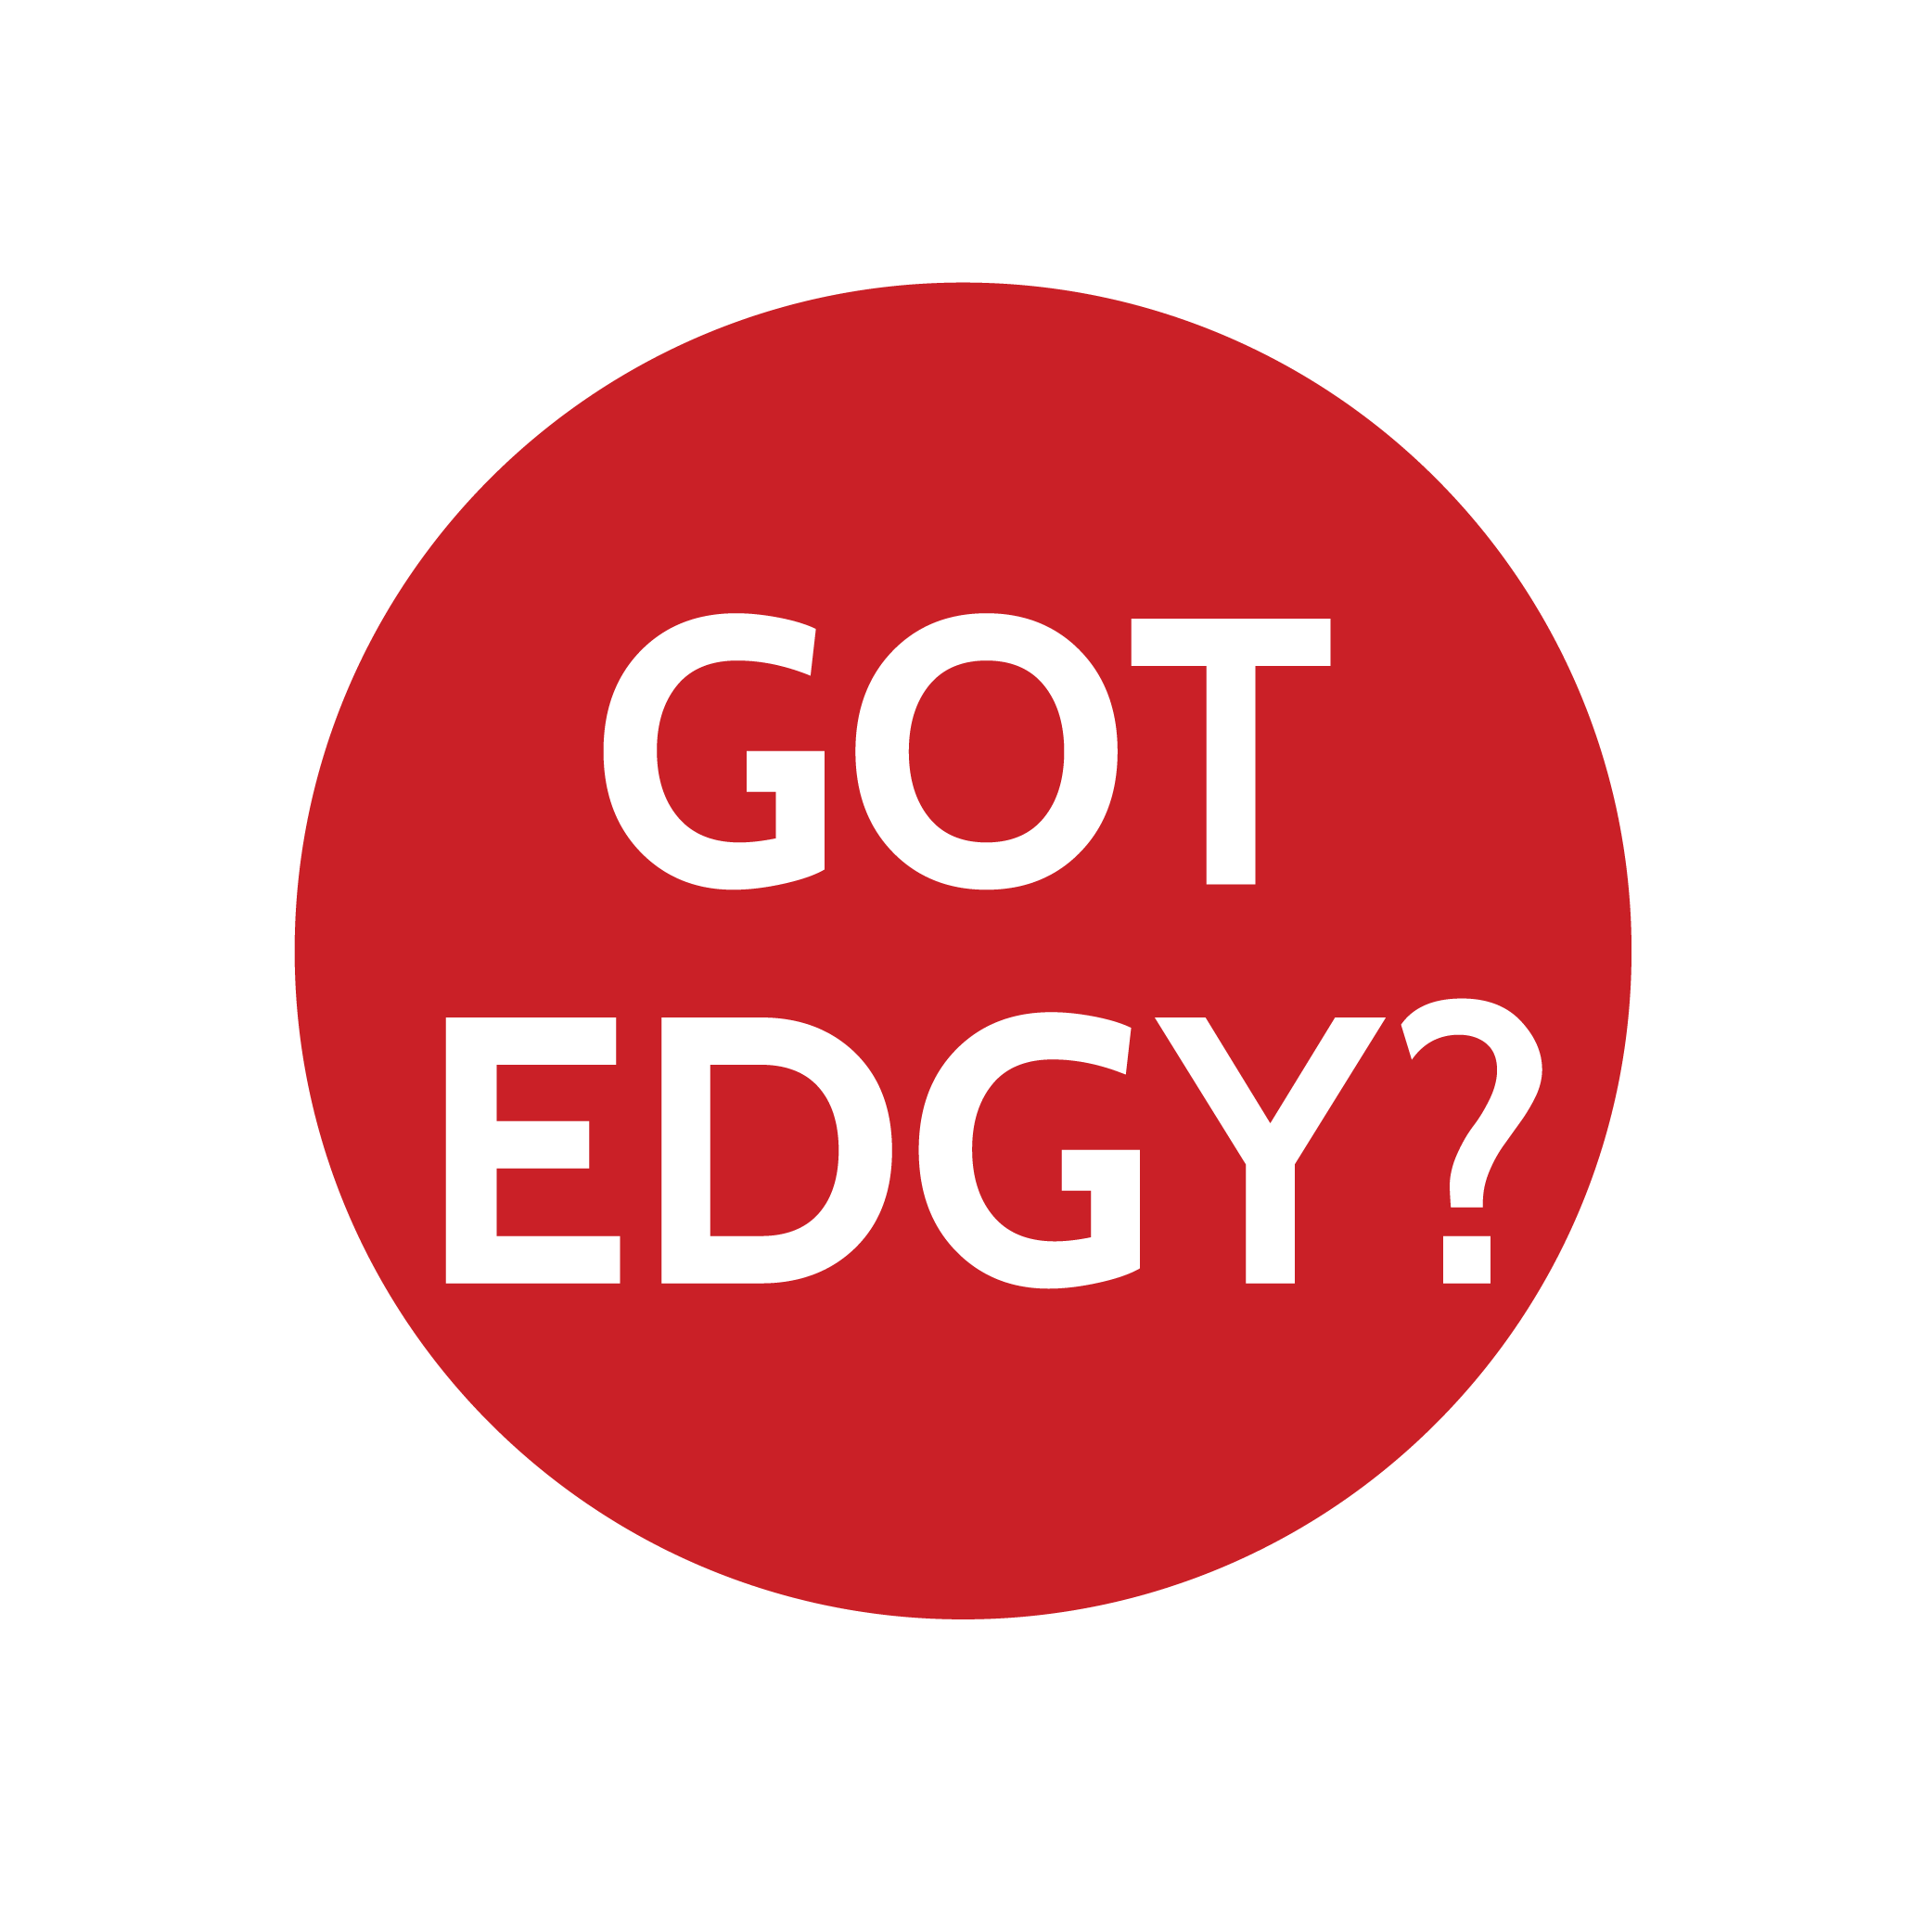 Get EDGY...